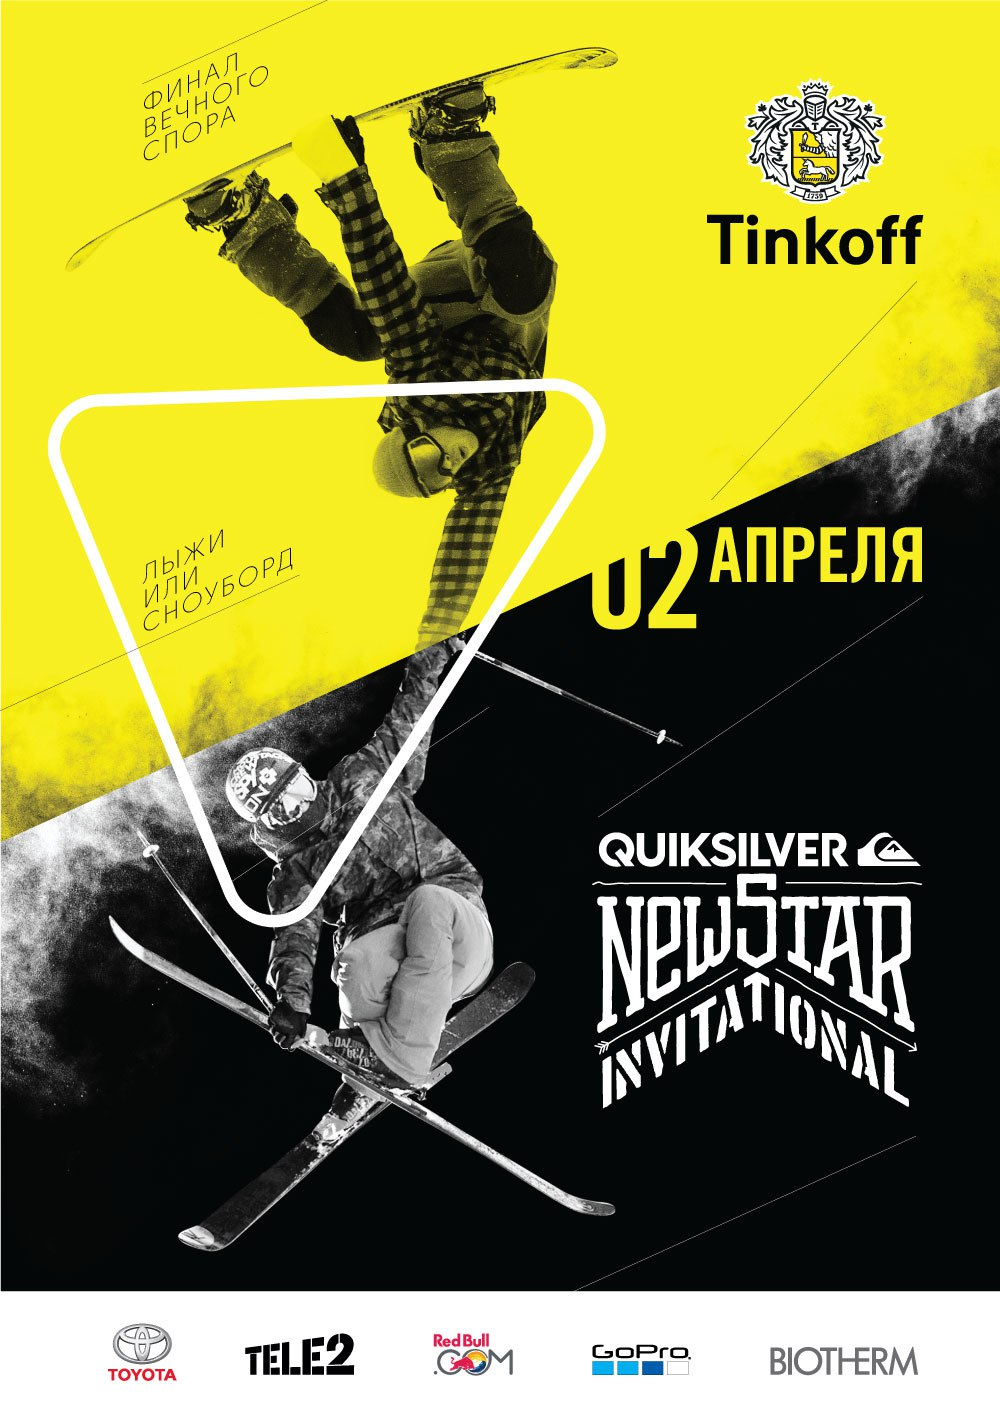 QUIKSILVER NEW STAR CAMP 2017, newstarcamp, quiksilver, rosakhutor, роза хутор,